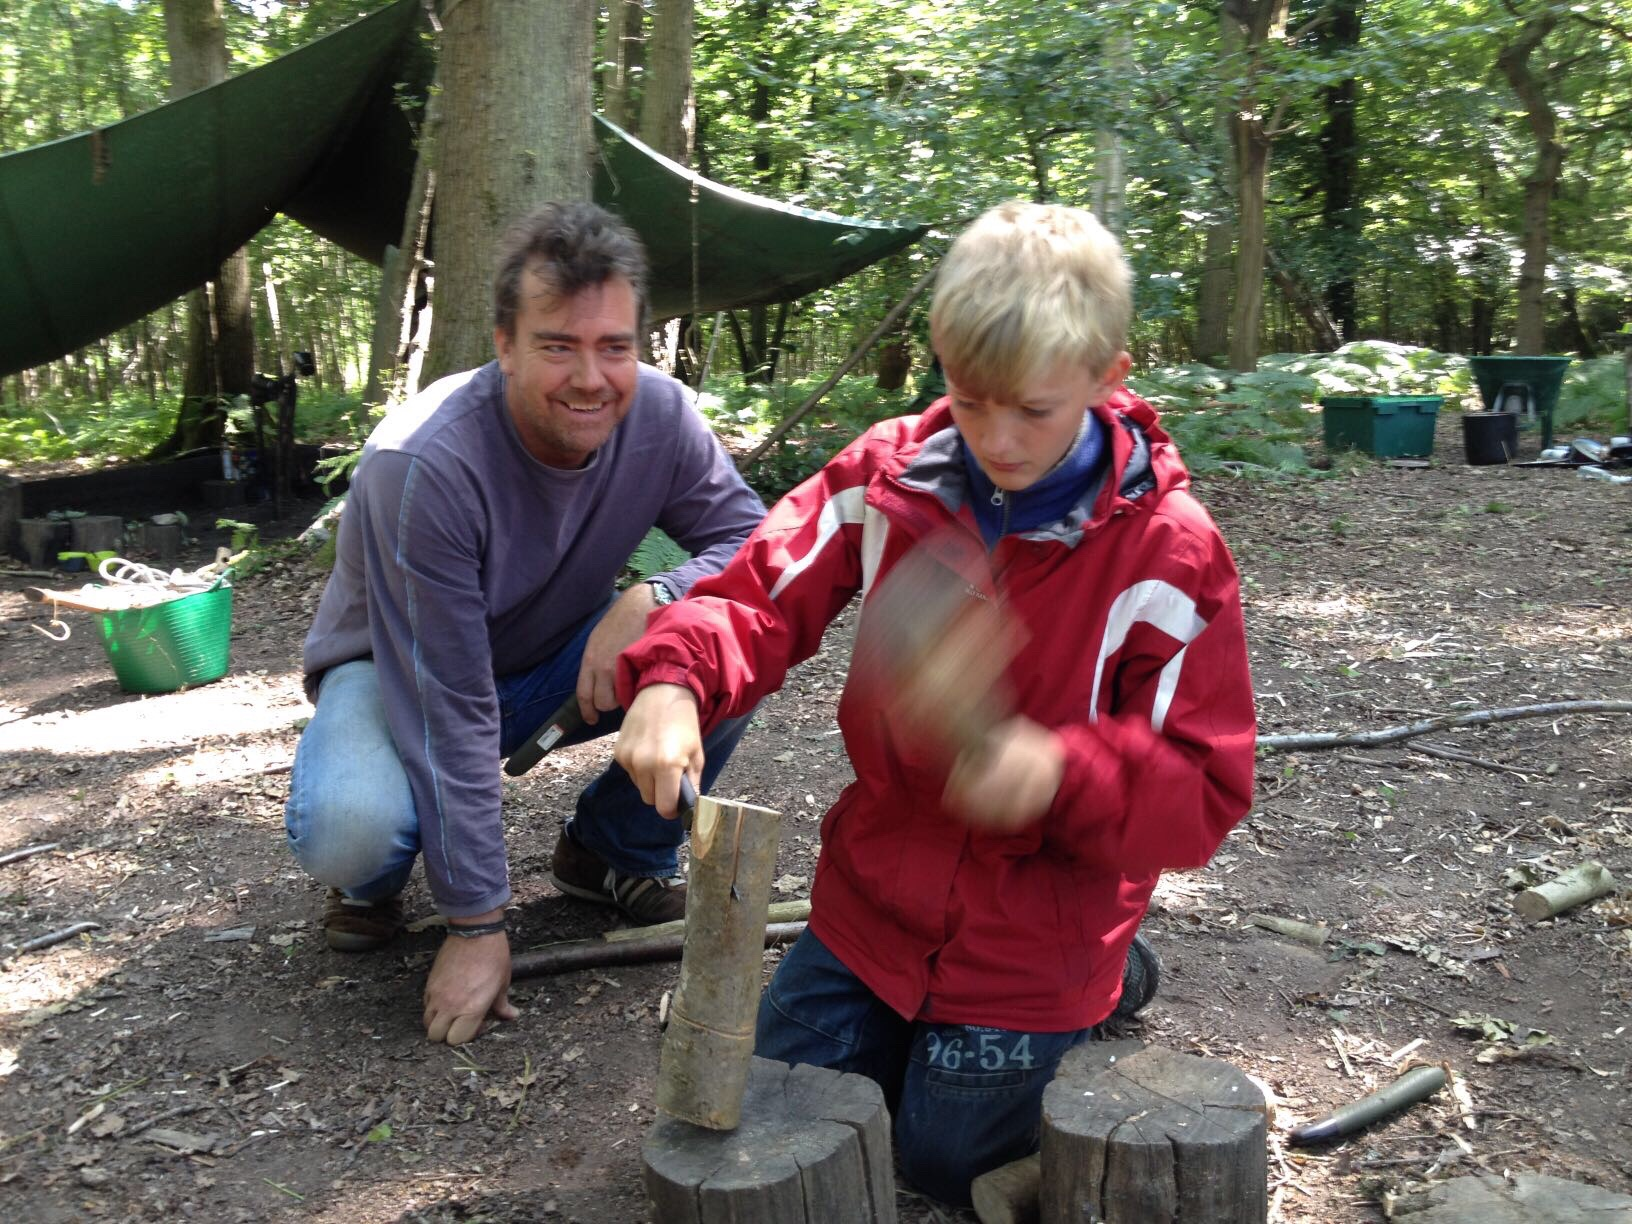 Father son bushcraft experience day